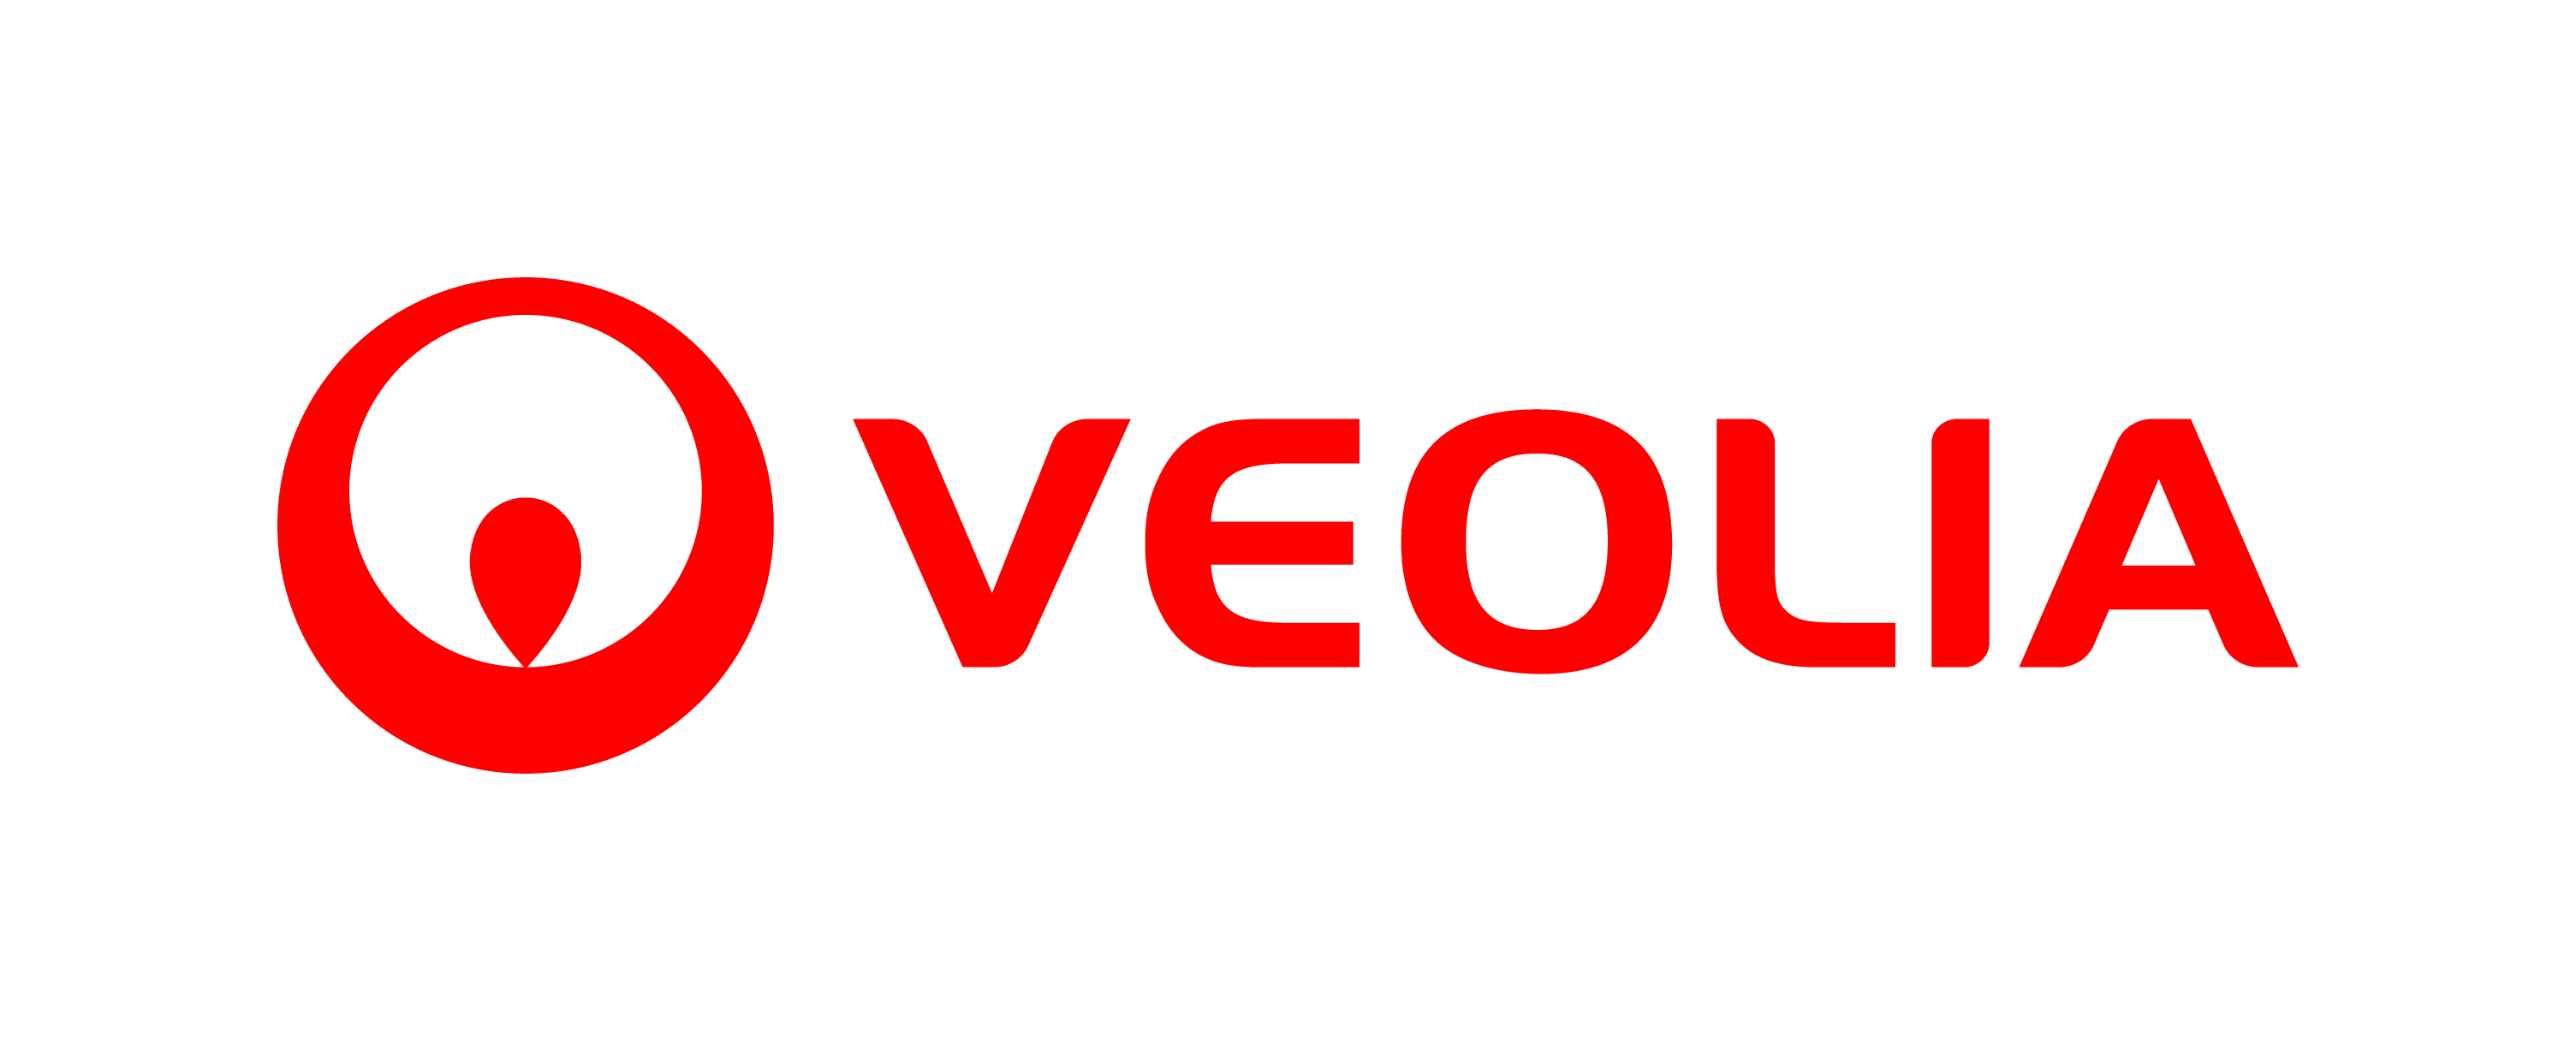 veolia-ist-conference-exhibitor